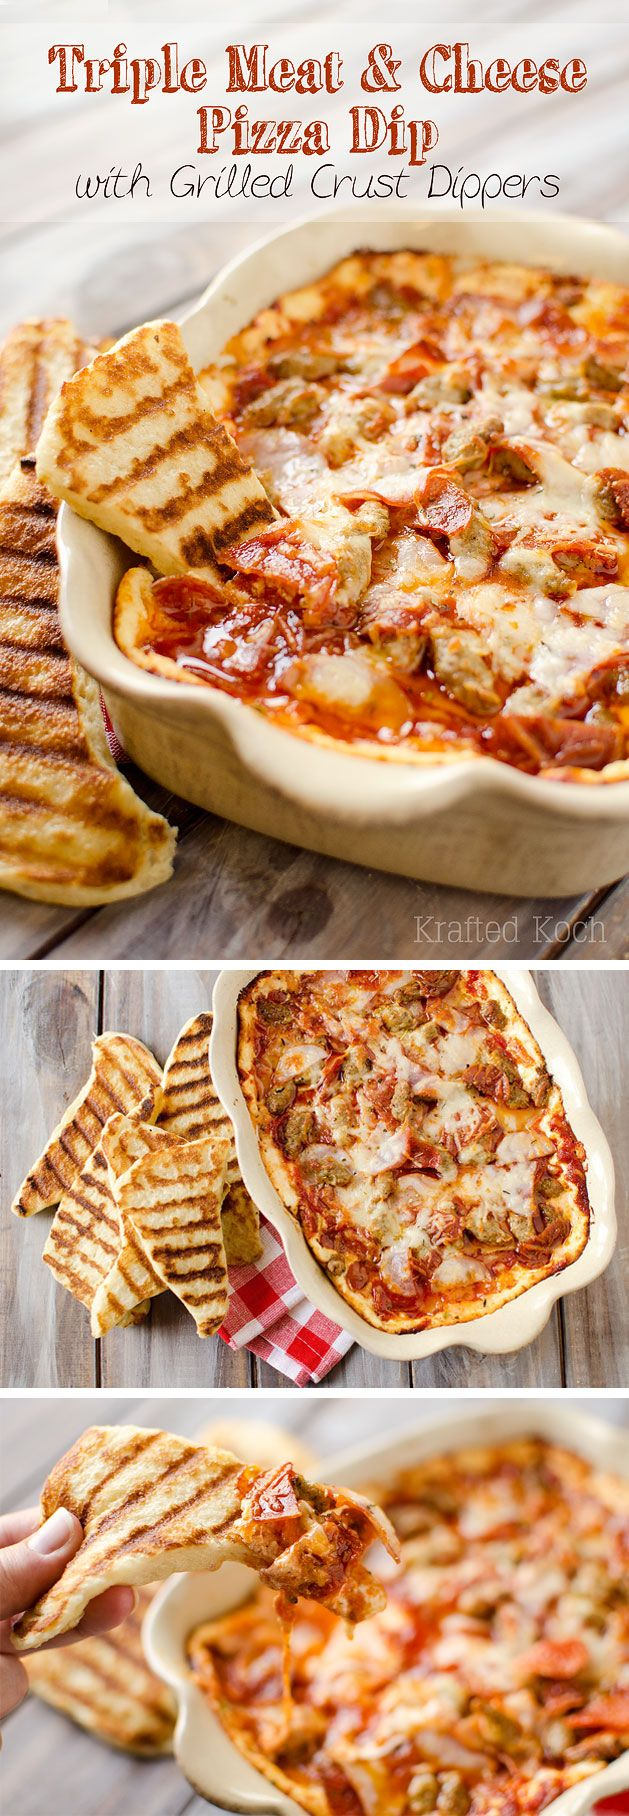 Triple Meat & Cheese Pizza Dip with Grilled Crust Dippers is an amazingly cheesy and flavorful appetizer recipe that will be a hit at your next party! - Krafted Koch #Appetizer #Dip #Pizza #SuperBowl